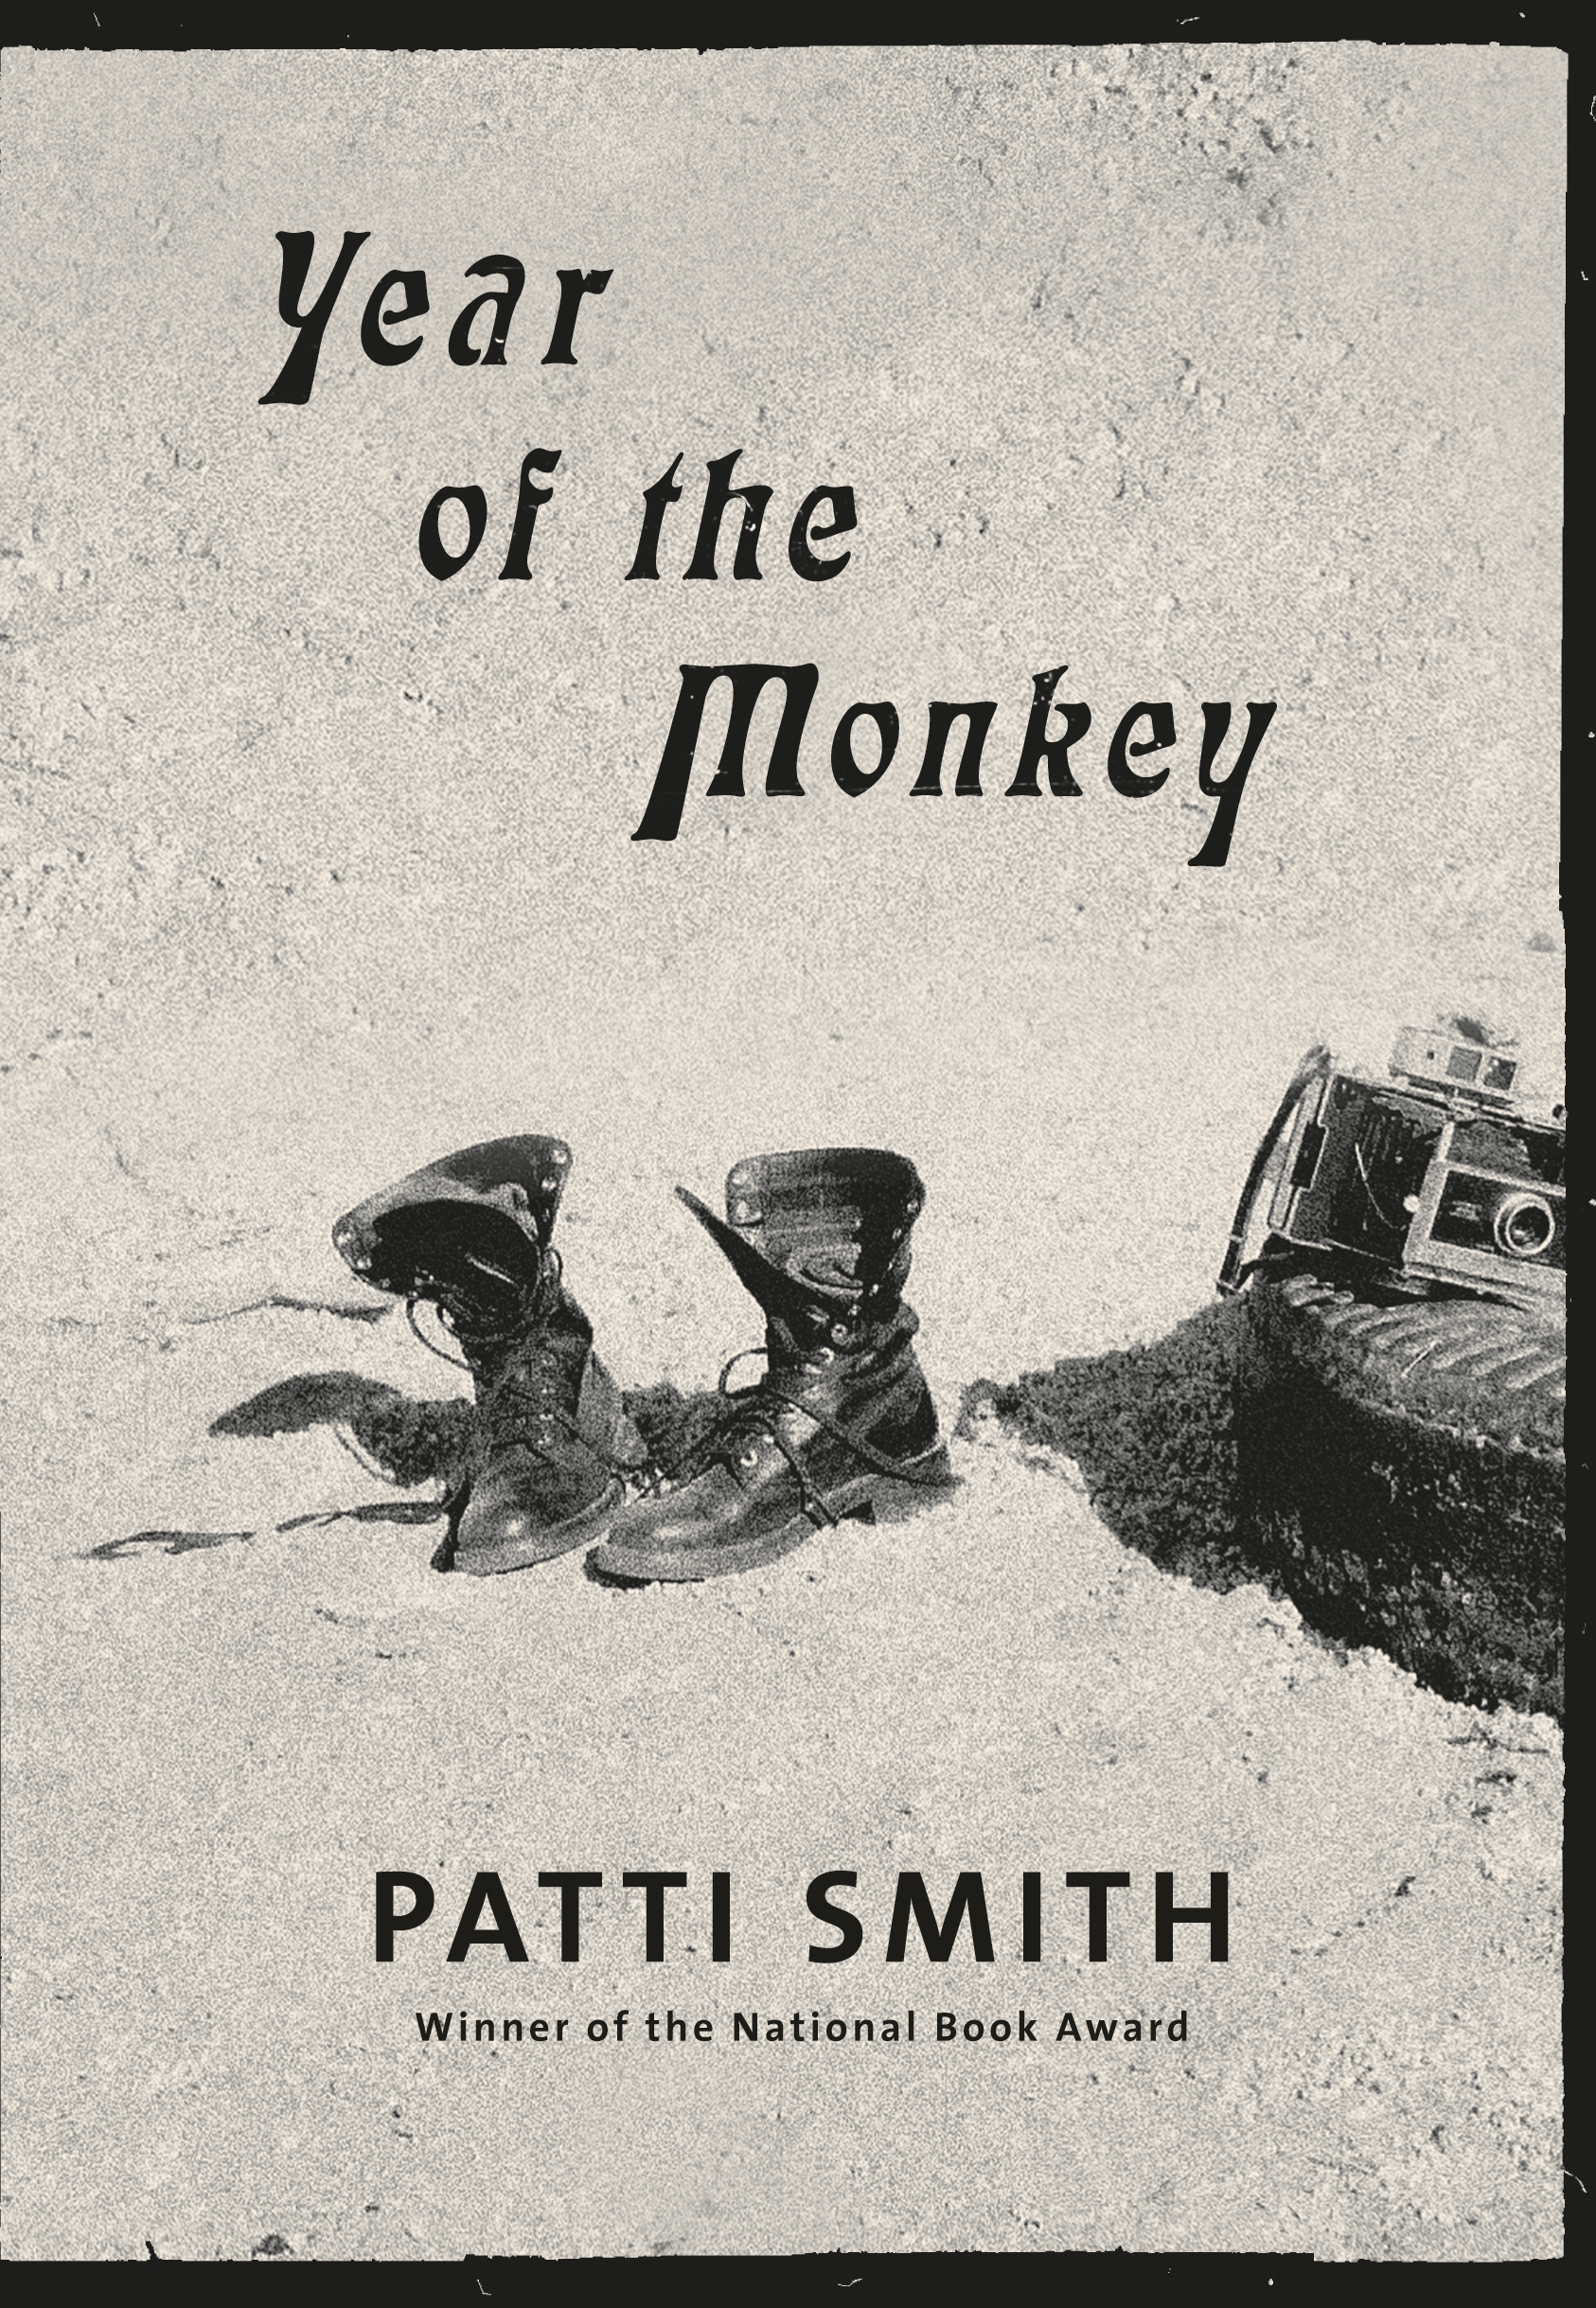 Patti Smith Year of the Monkey cover